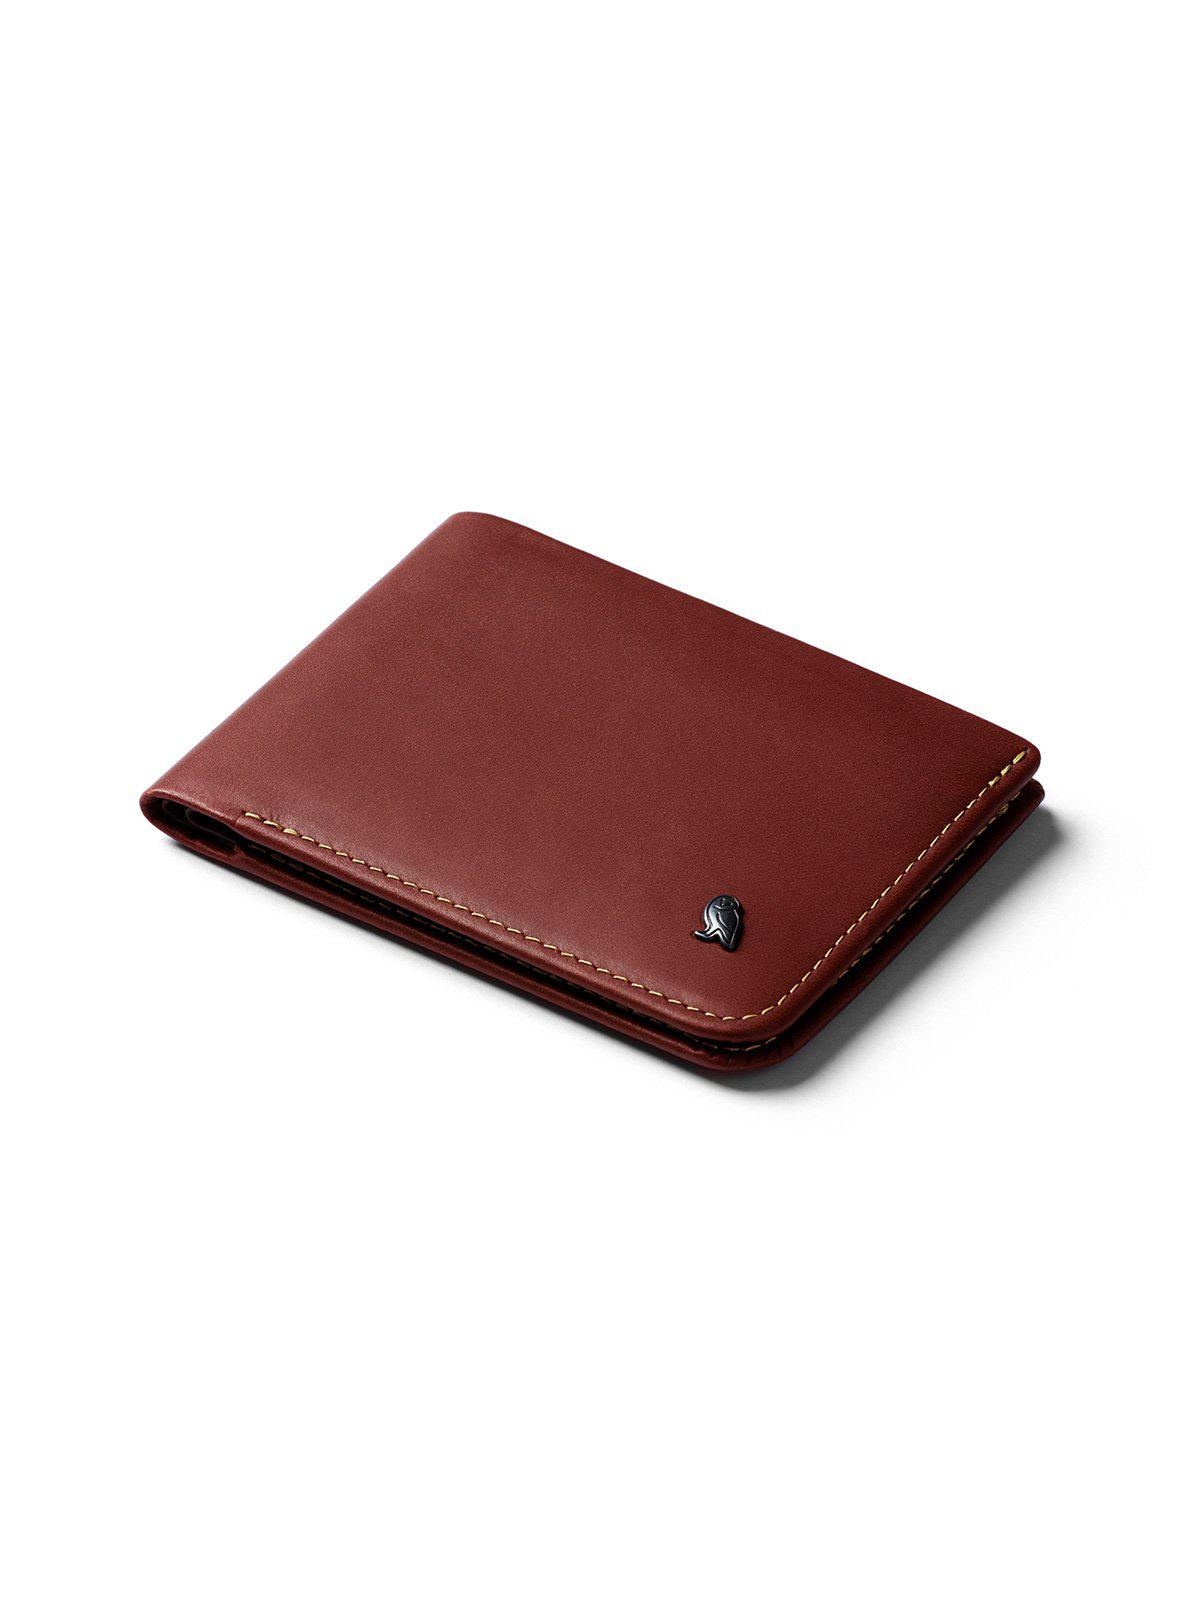 Bellroy Hide and Seek Wallet Red Earth RFID - MORE by Morello Indonesia